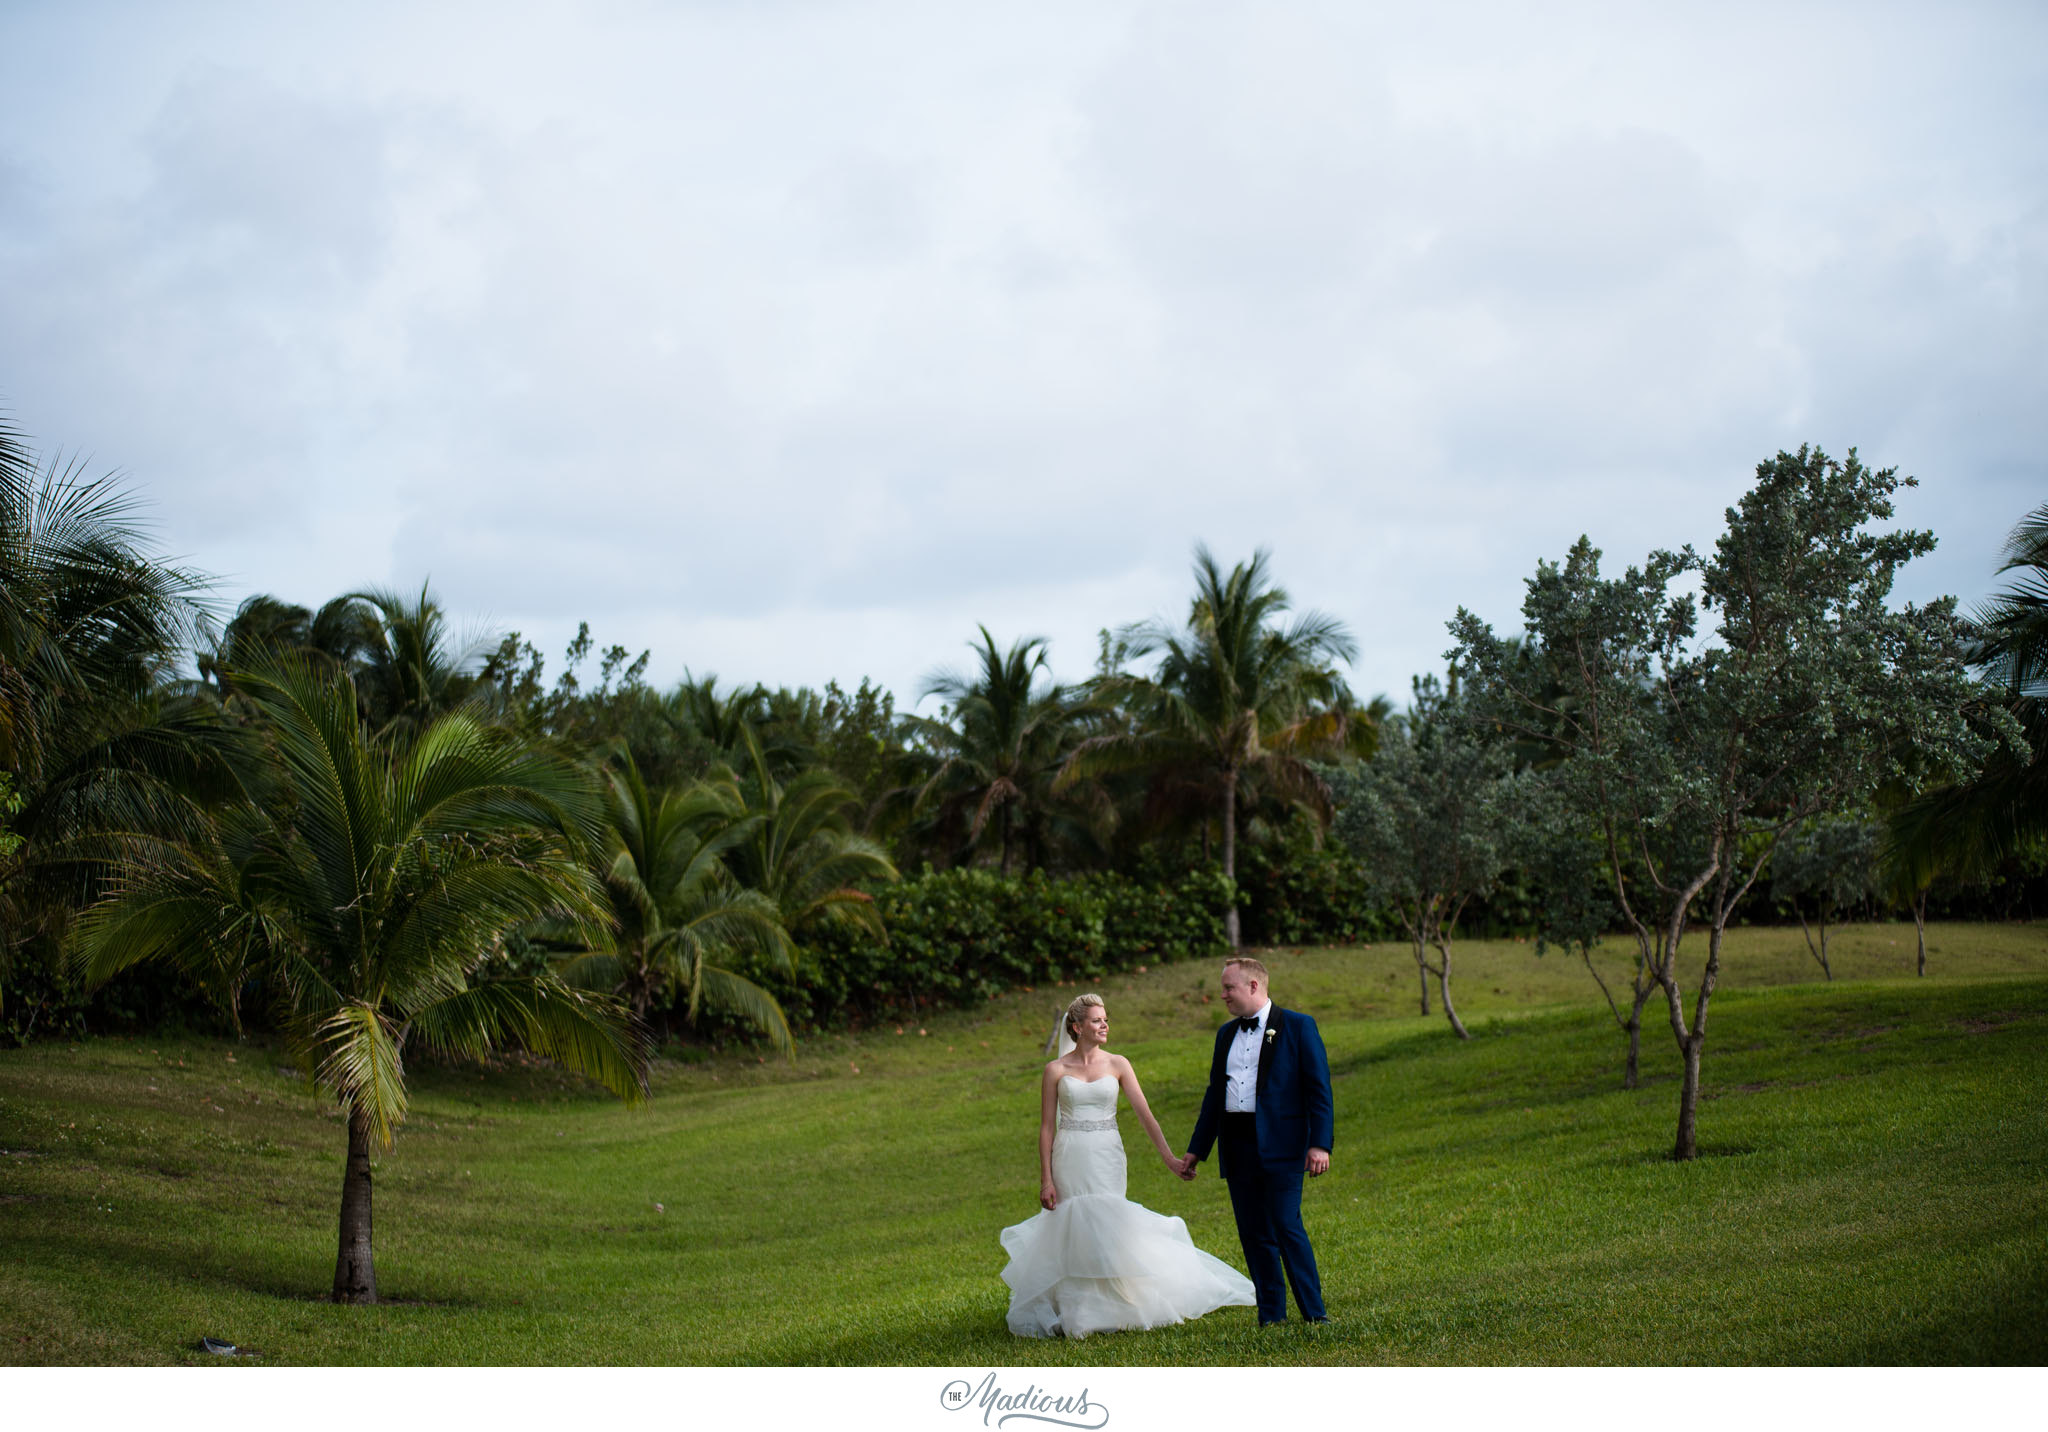 Atlantis Resort wedding Bahamas photographer_59.JPG